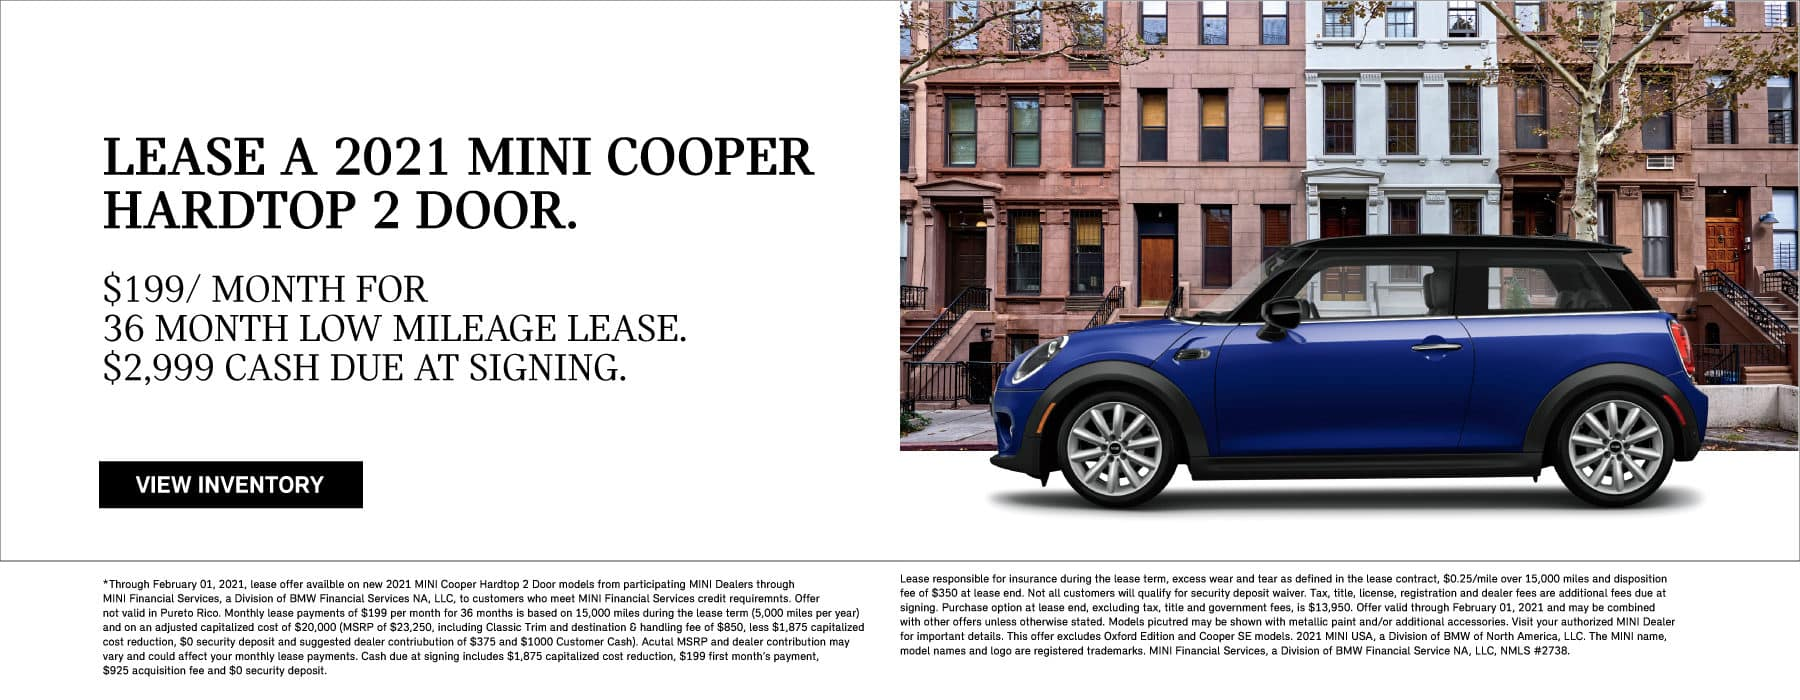 Lease a 2021 MINI Cooper Hardtop 2 Door for $199 per month for 36 low mileage lease. $2999 due at signing